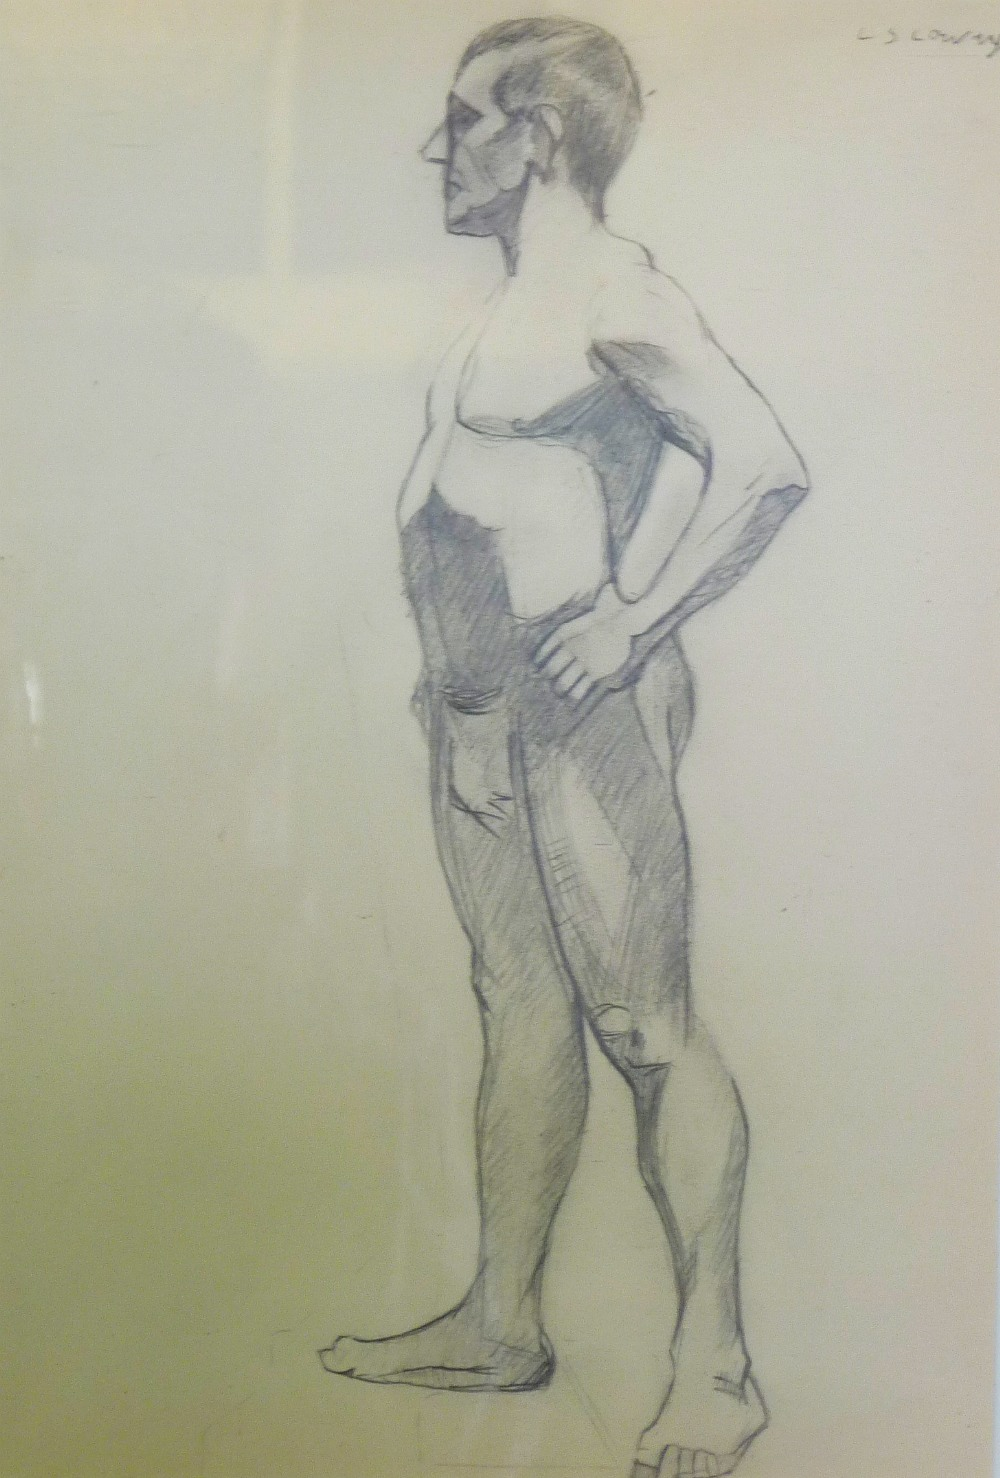 Lot 137 attributed to l s lowry pencil drawing study of a nude male signed upper